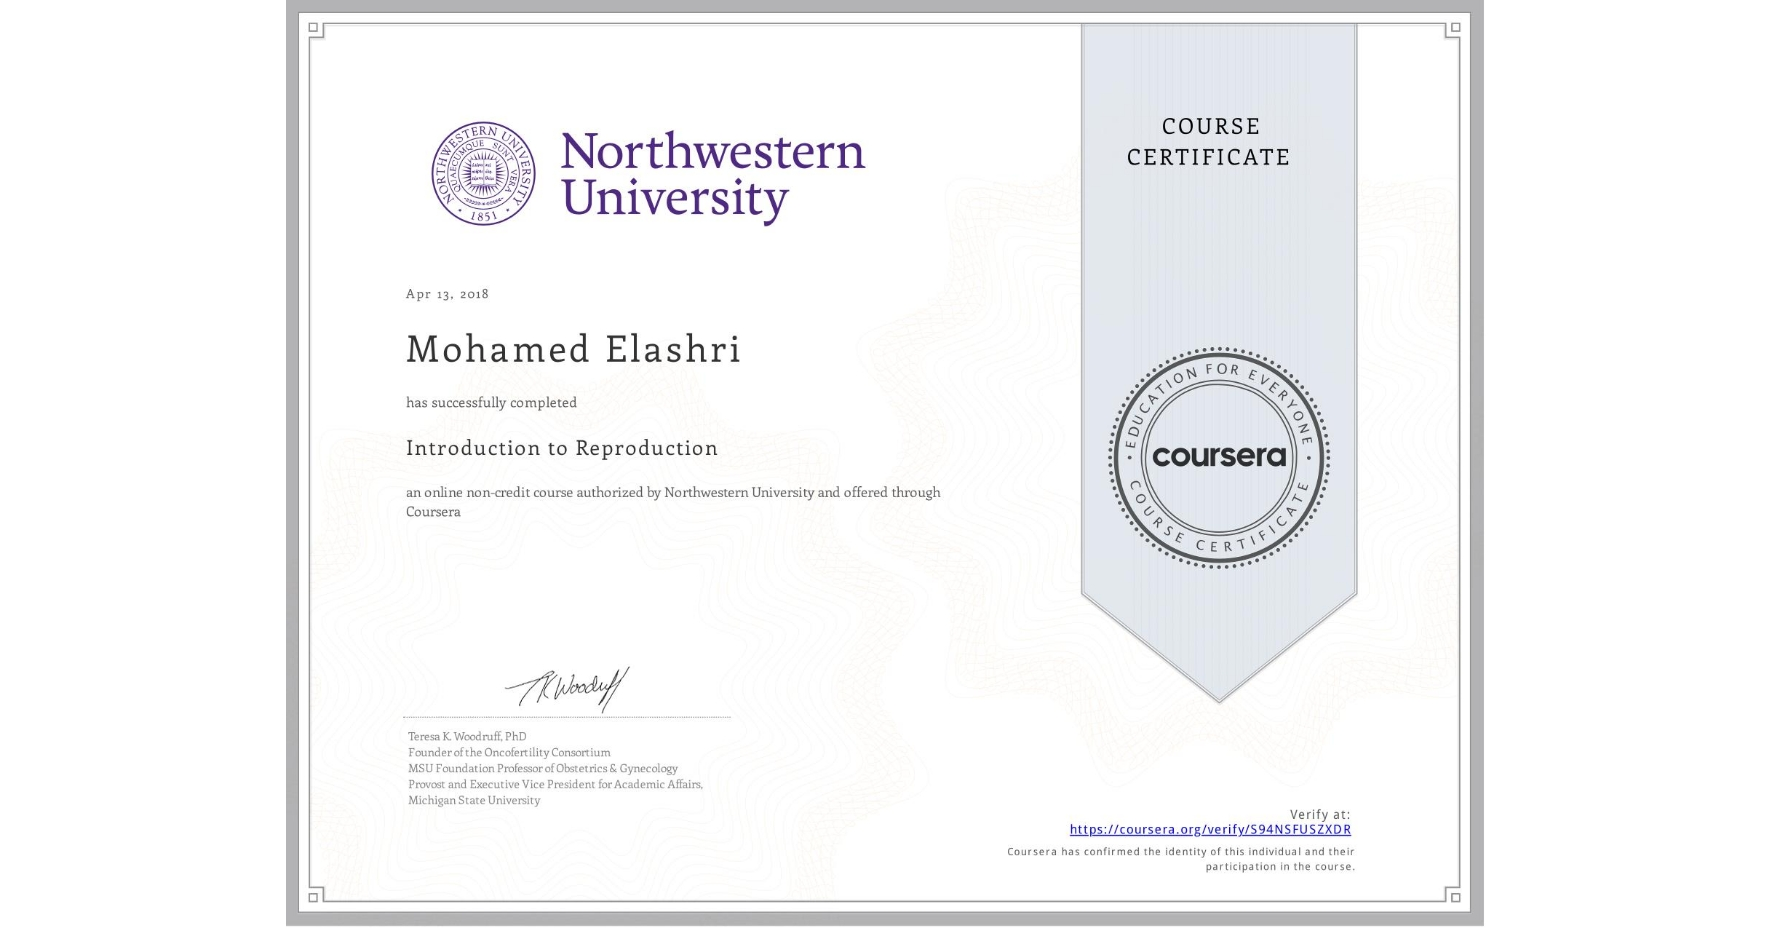 View certificate for Mohamed Elashri, Introduction to Reproduction, an online non-credit course authorized by Northwestern University and offered through Coursera